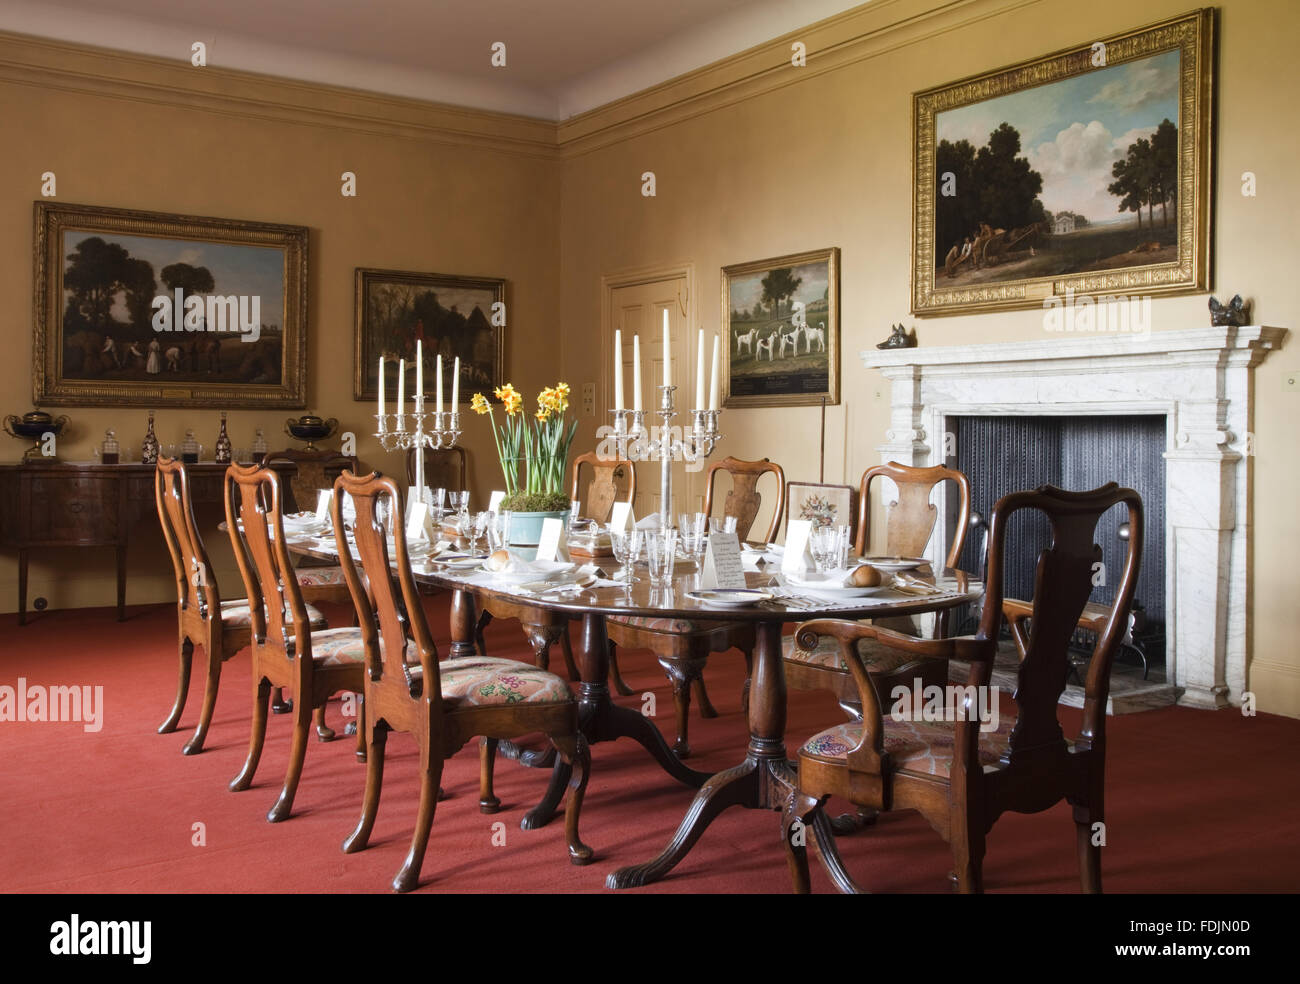 Super The Dining Room With Mahogany Table Laid With Full Dining Machost Co Dining Chair Design Ideas Machostcouk